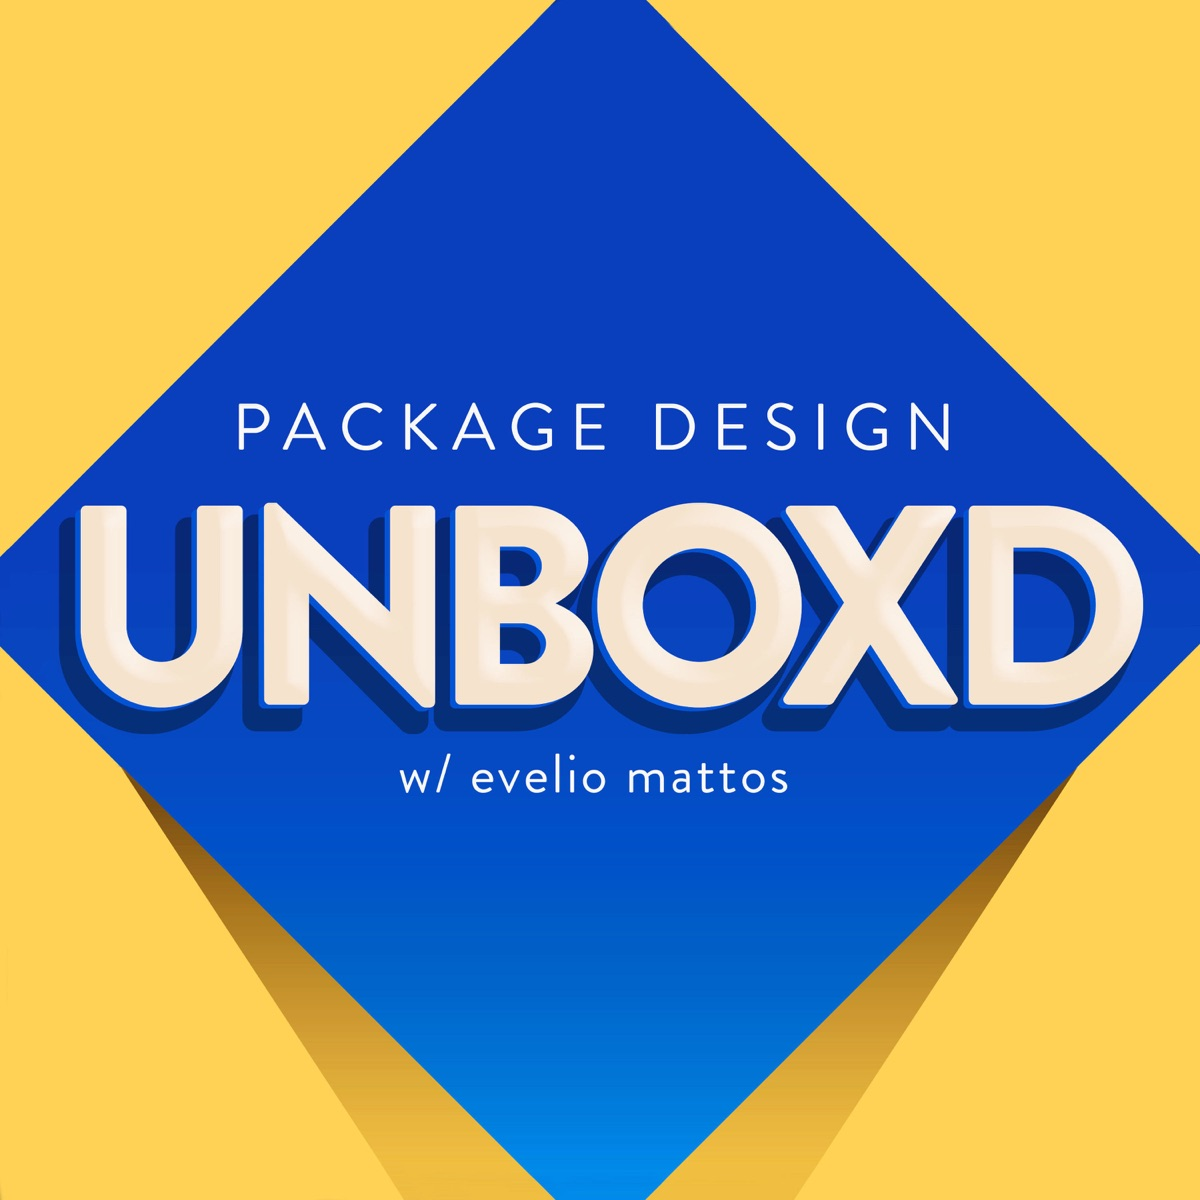 Package Design Unboxd - Everything you need to know about packaging design.